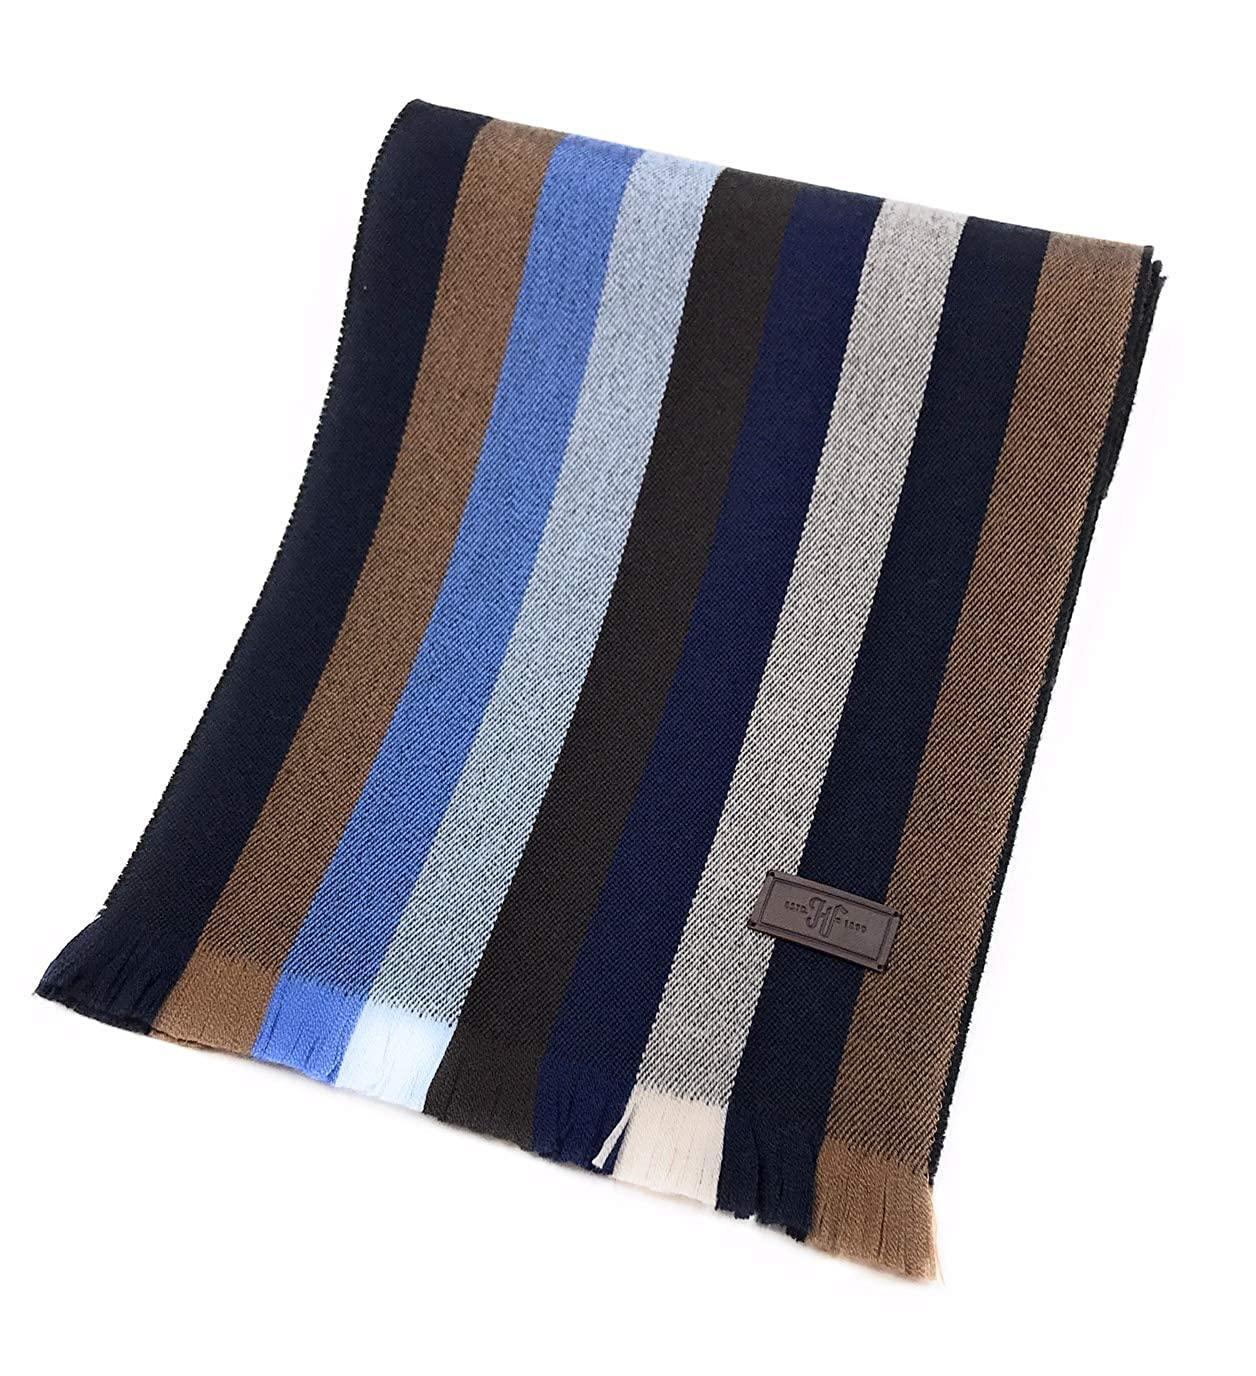 Men/'s Wool Scarf 100/% Australian Merino Wool 72 inches x 10 inches by Hickey Freeman